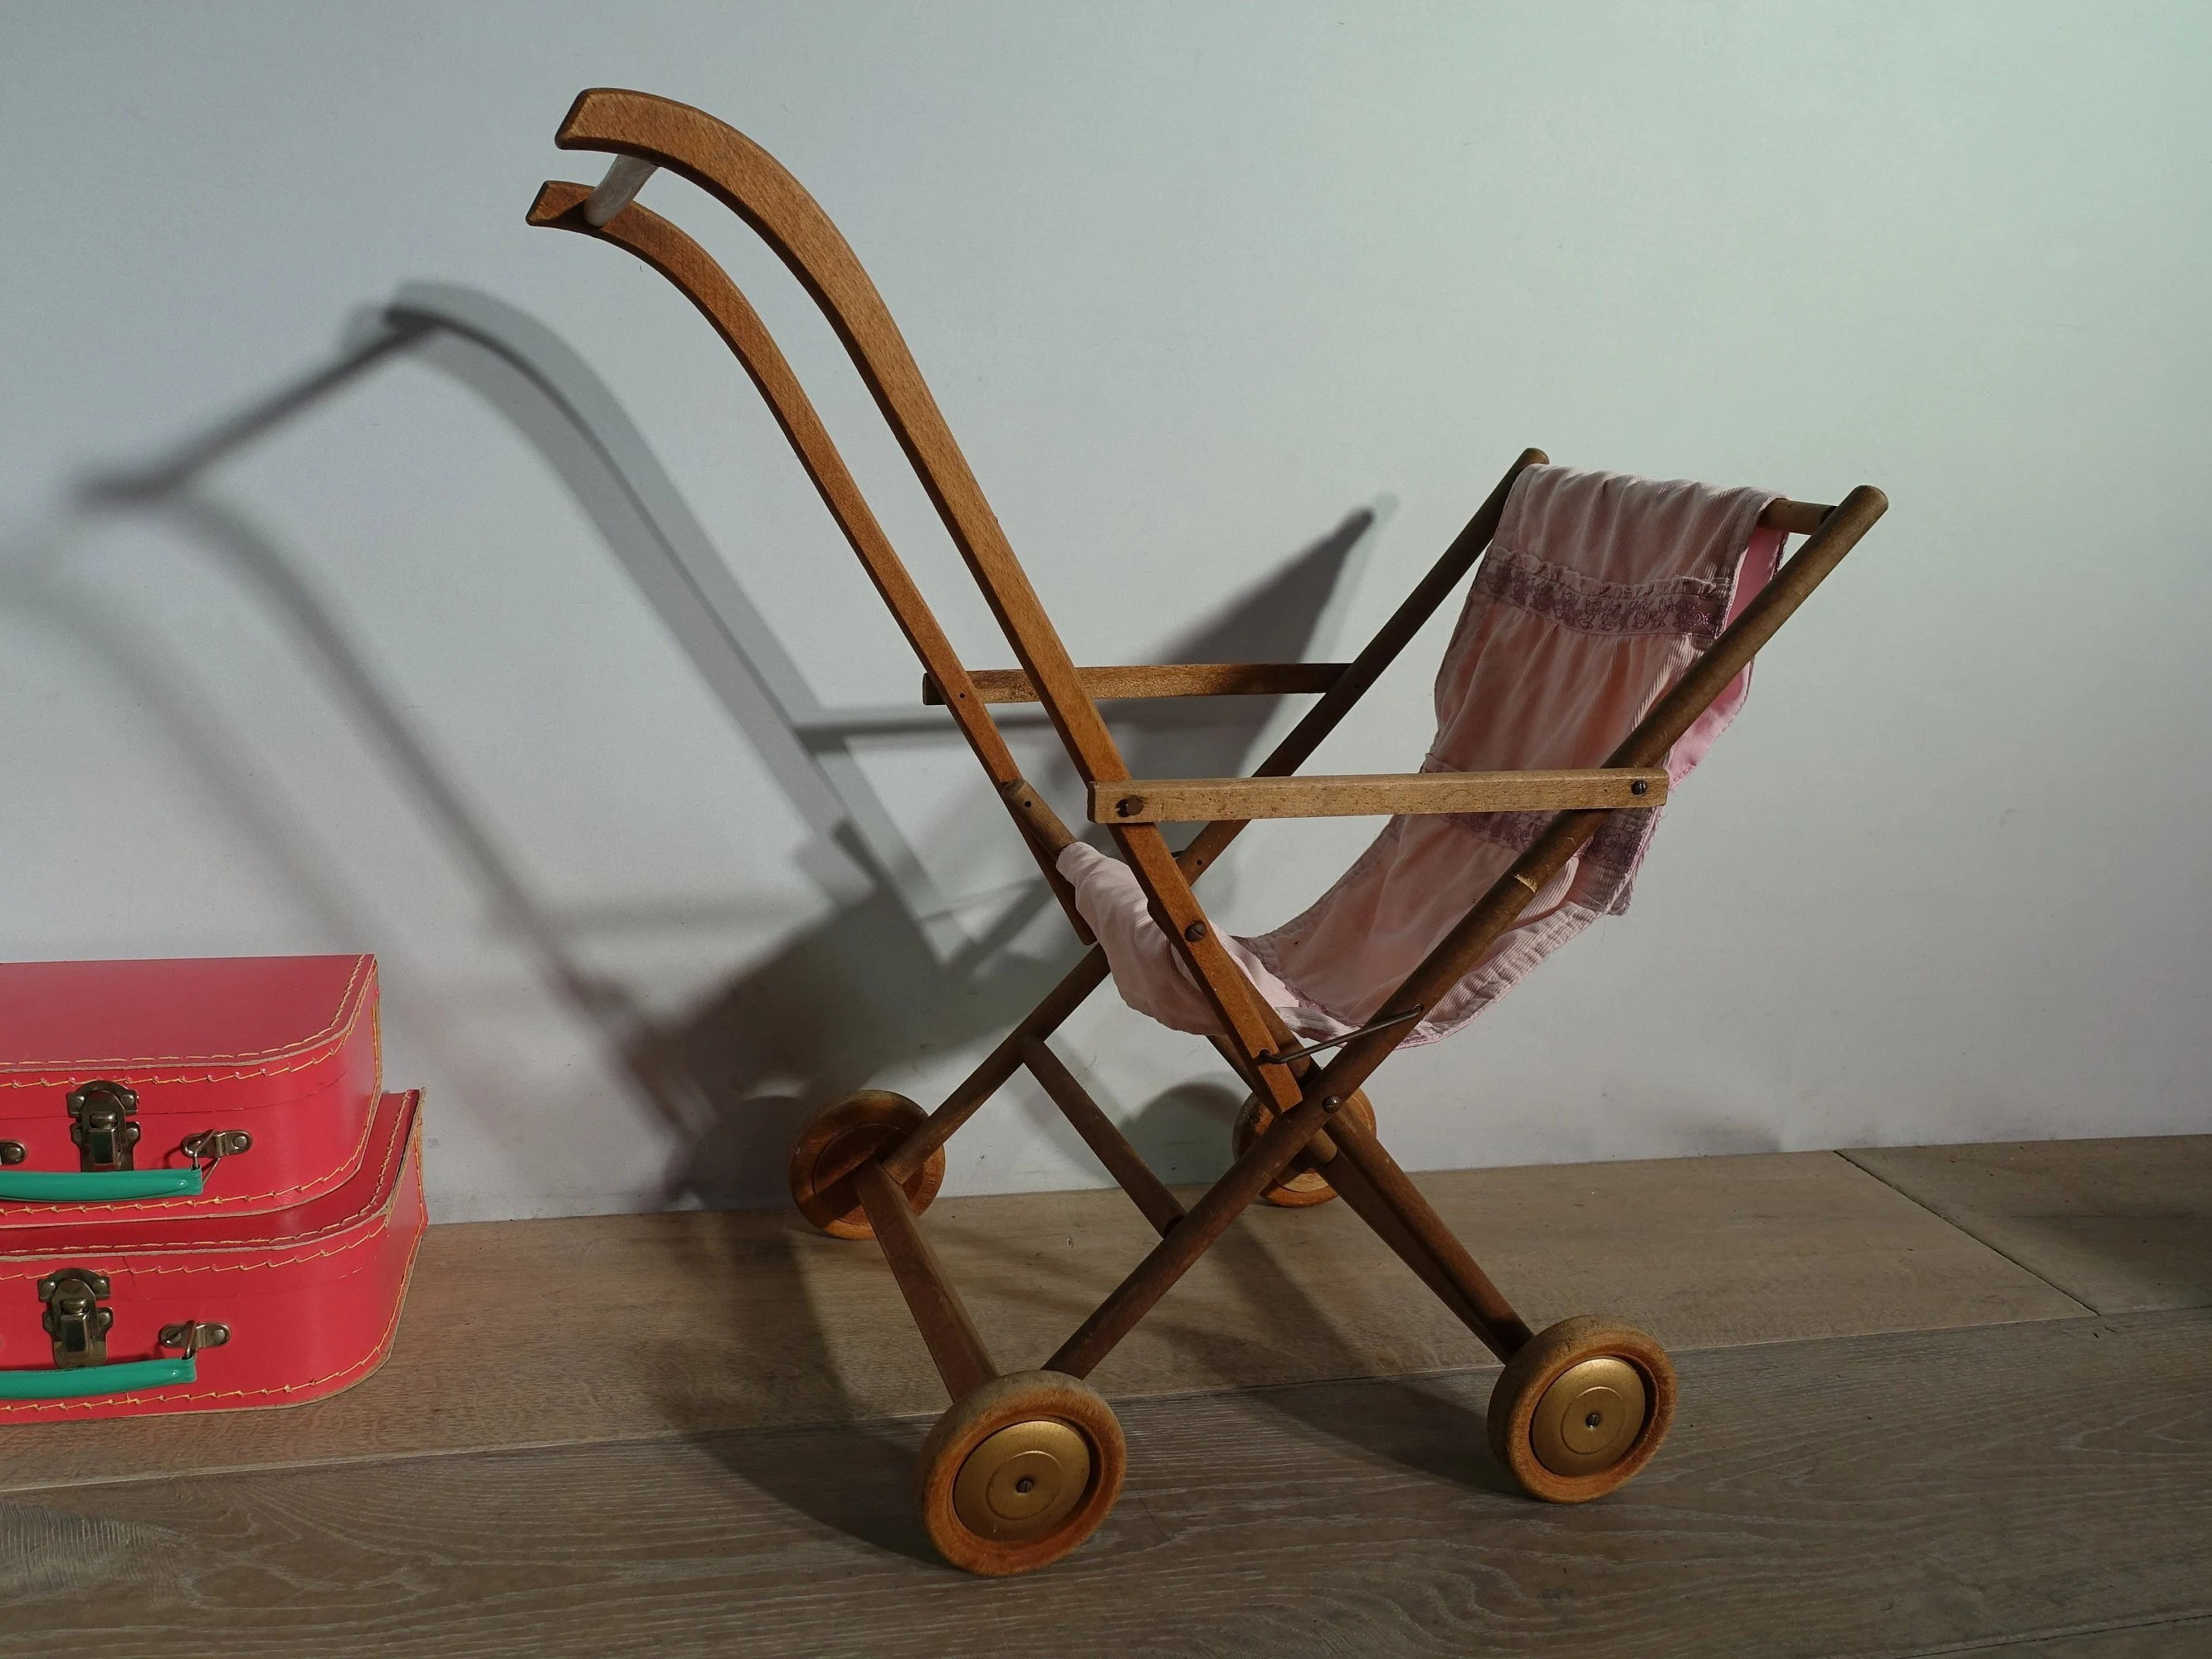 Vintage Toy Stroller Antique Baby Carriage Stroller Wood Vintage Child S Toy France Old Vintage Wooden Baby Toy Pram Stroller French